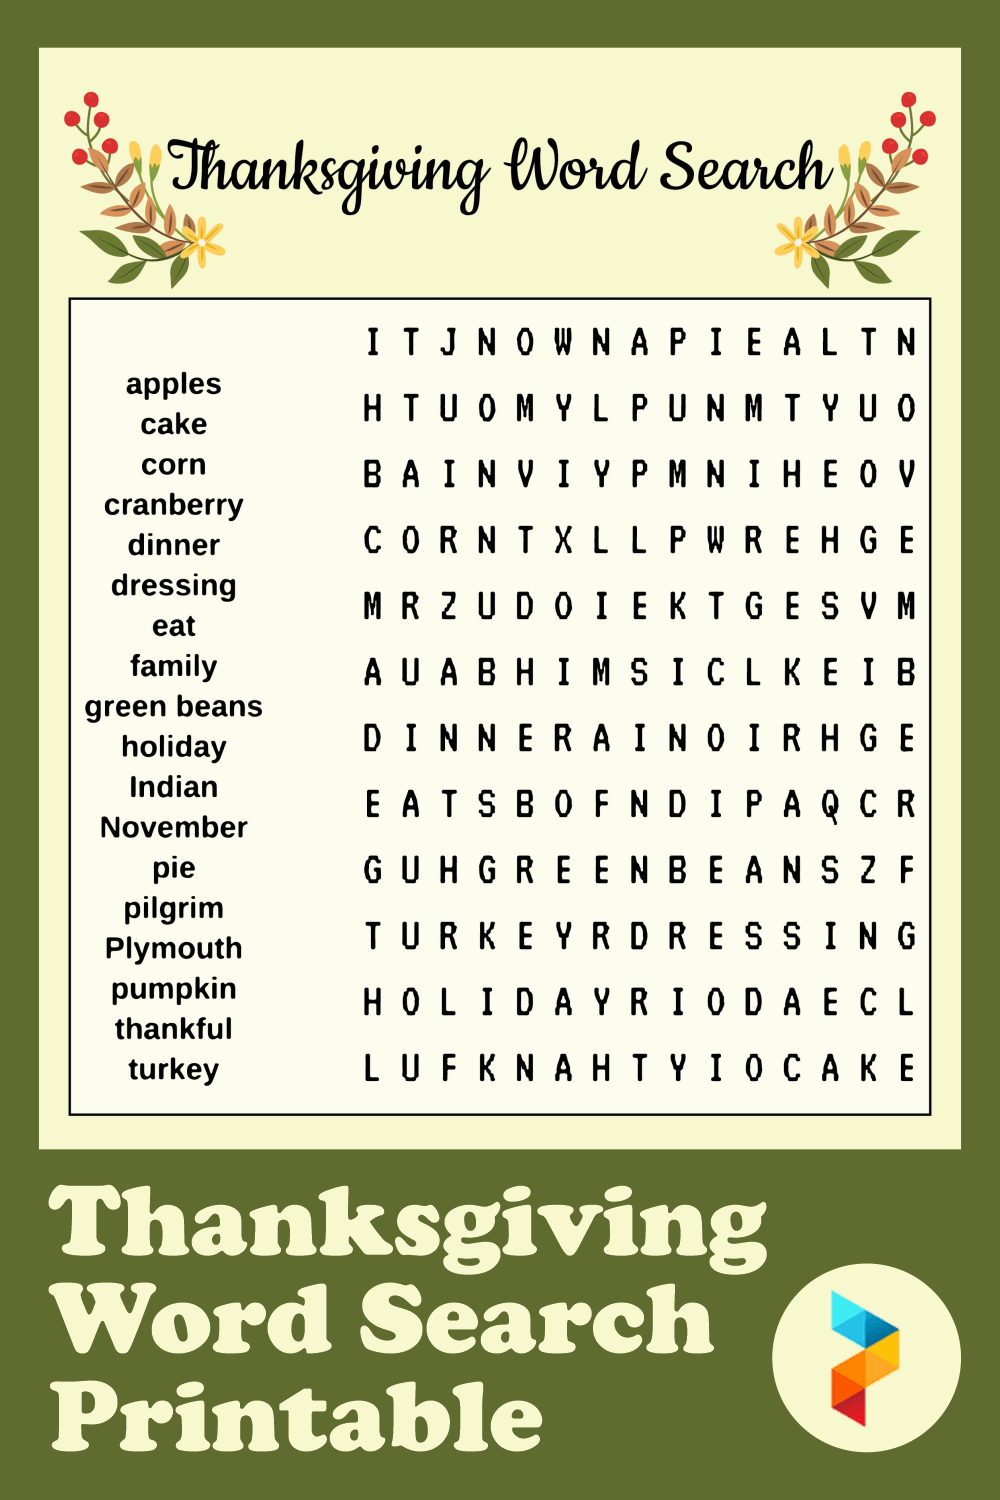 Thanksgiving Word Search Printable Free Photo png